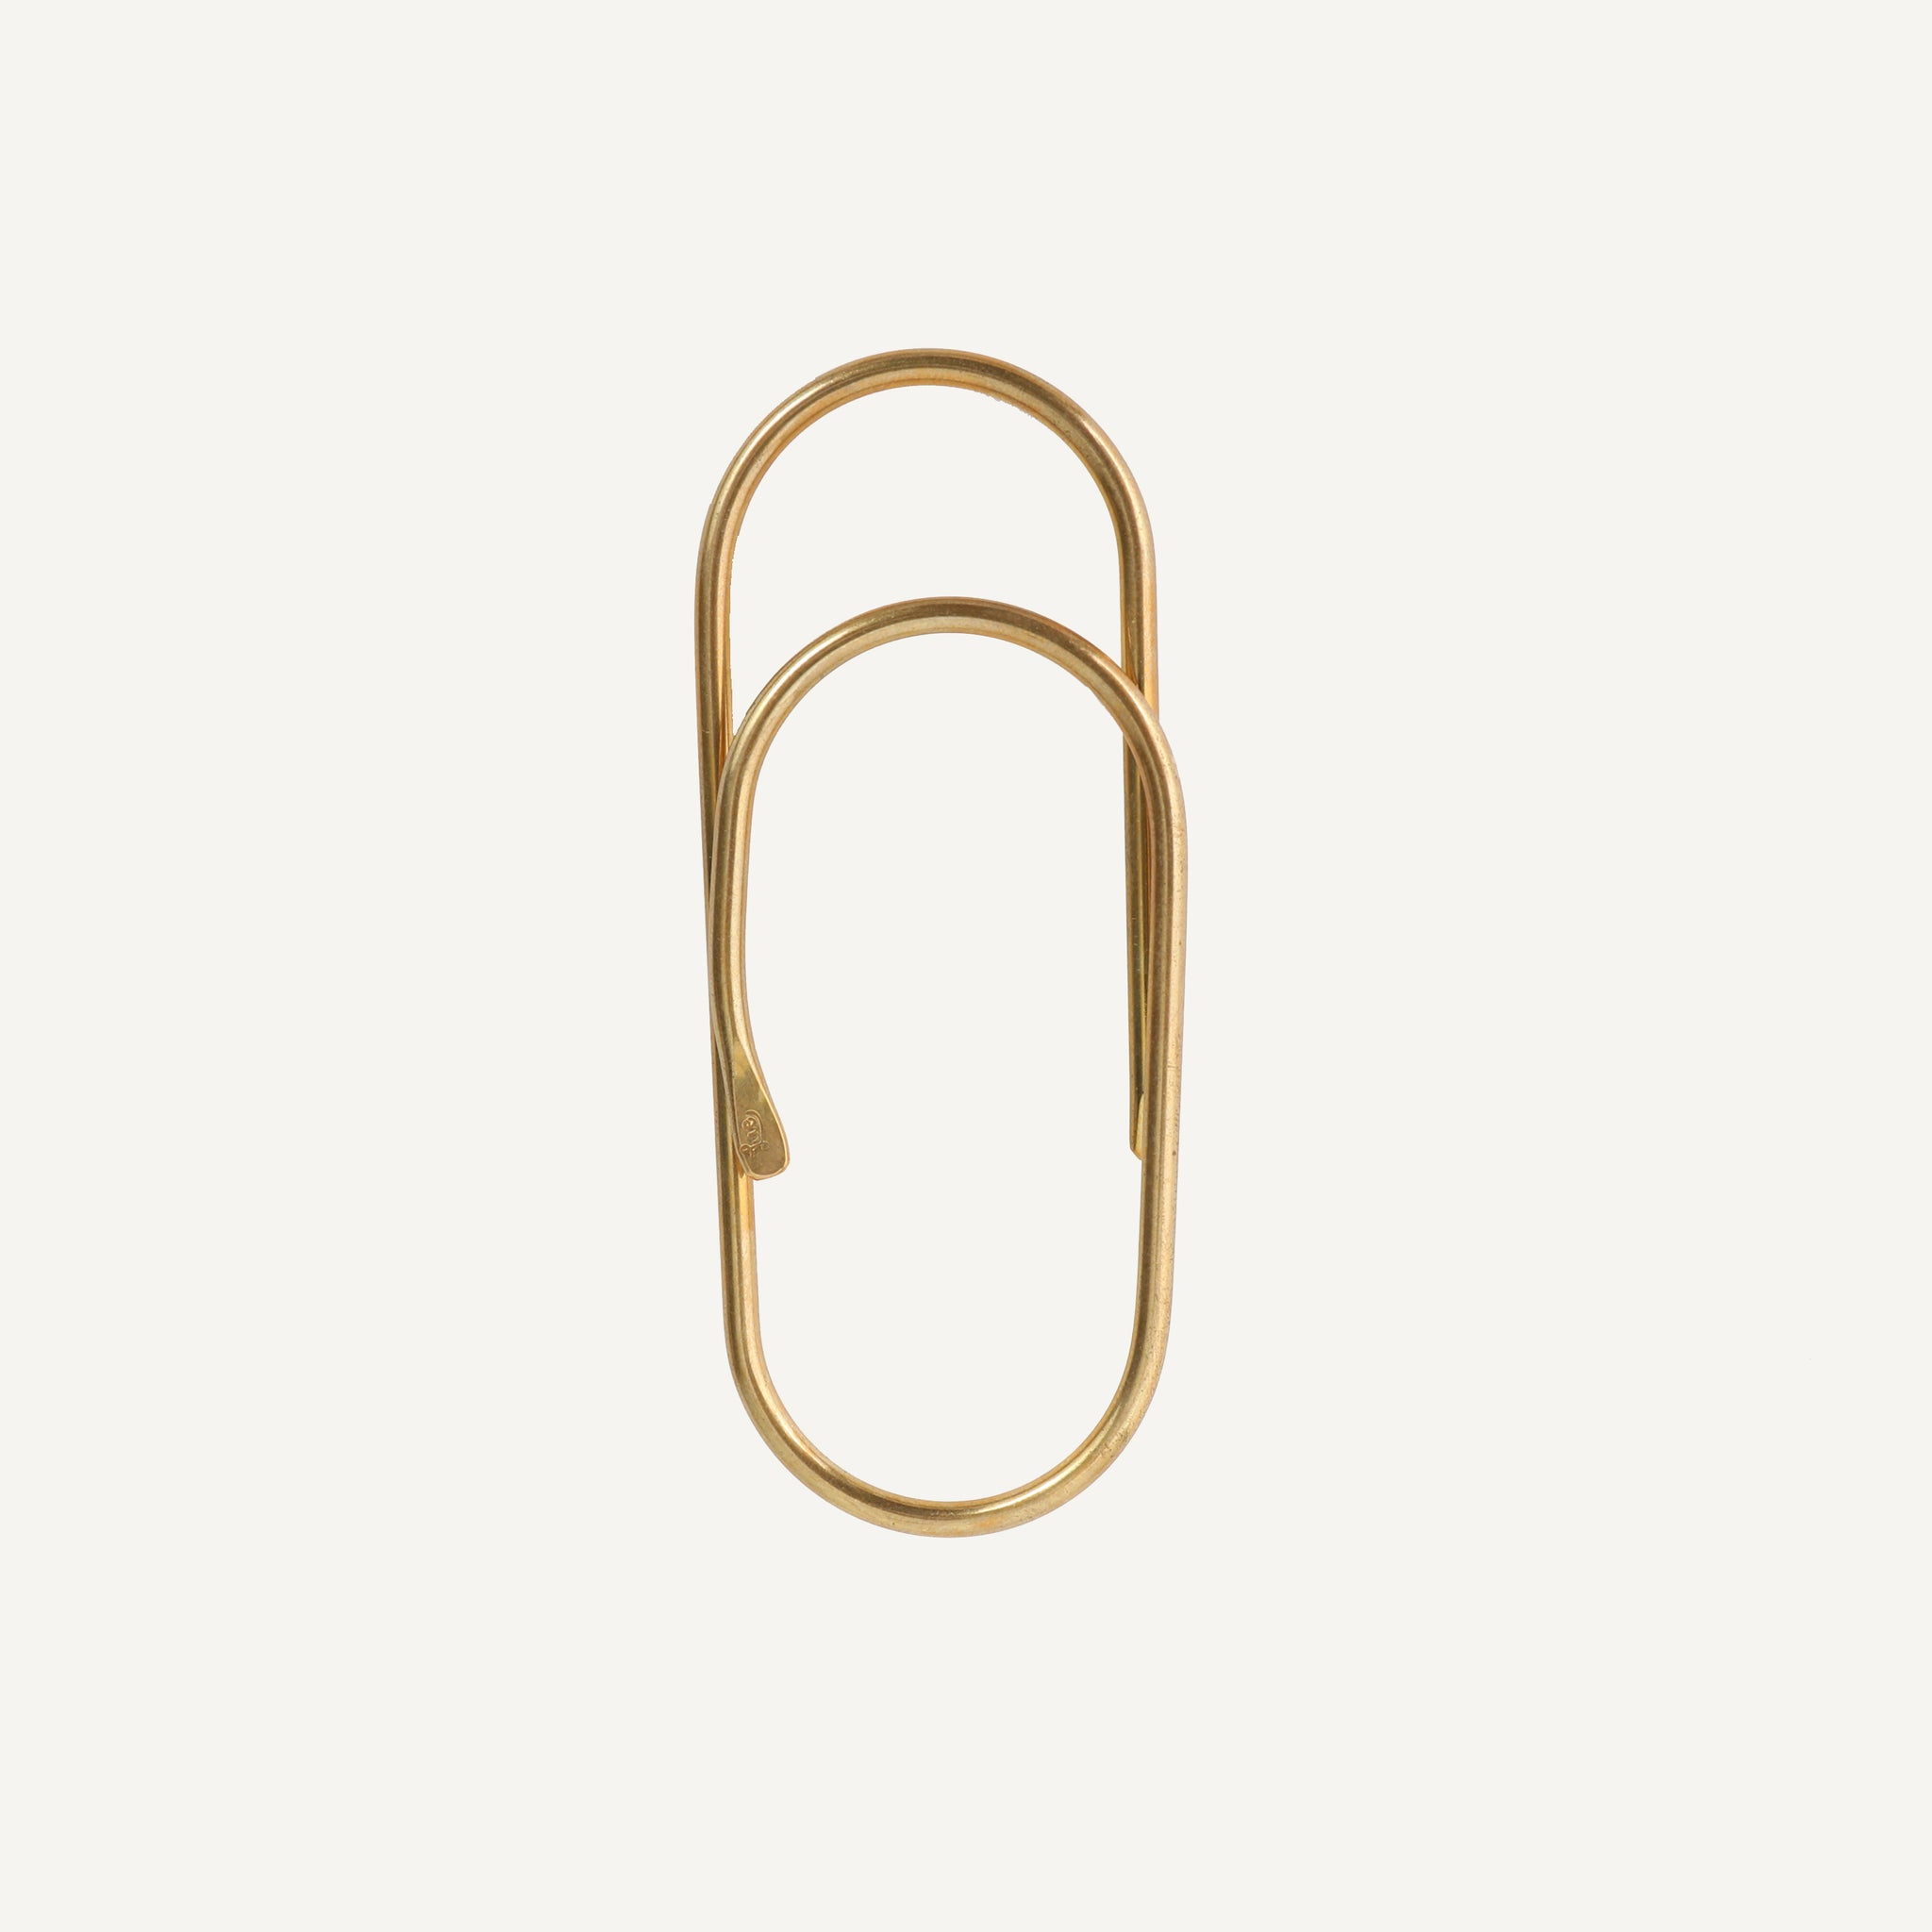 HAND FORGED BRASS PAPERCLIP